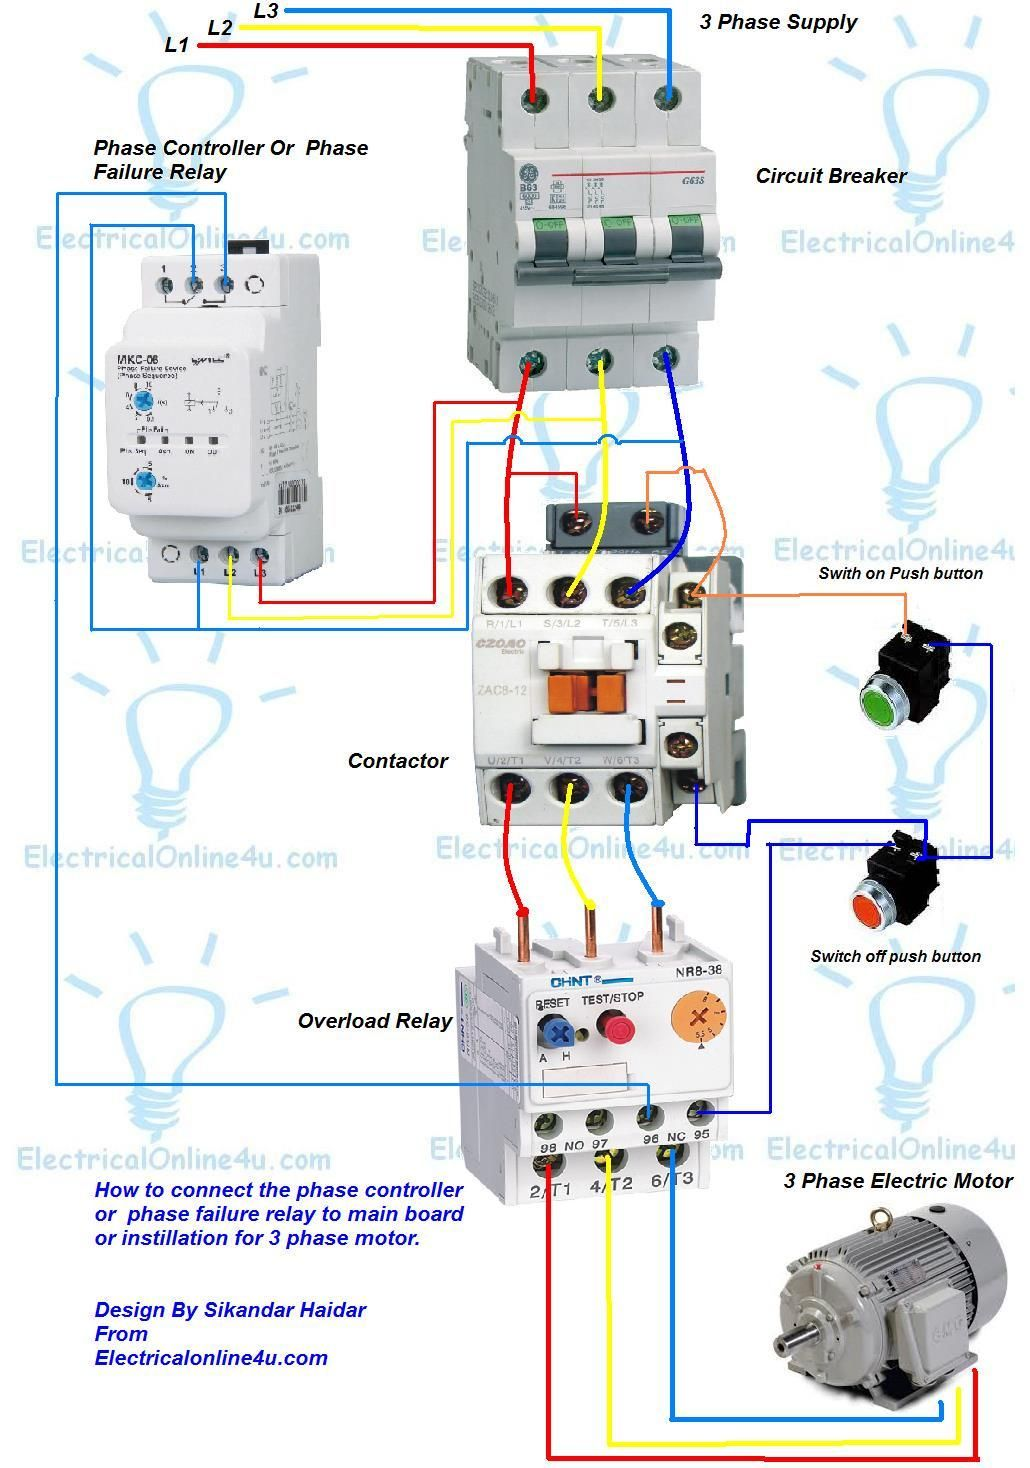 Three Phase Pump Wiring Diagram - Wiring Diagram Online on 3 phase schematic diagrams, 3 phase converter diagram, 3 phase transformers diagram, 3 phase generator diagram, 3 phase inverter diagram, 3 phase wire, 3 phase power, 3 phase relay, 3 phase connector diagram, 3 phase cable, 3 phase circuit, 3 phase block diagram, 3 phase motor connection diagram, ceiling fan installation diagram, 3 phase regulator, 3 phase coil diagram, 3 phase electricity diagram, 3 phase plug, 3 phase thermostat diagram, 3 phase electric panel diagrams,